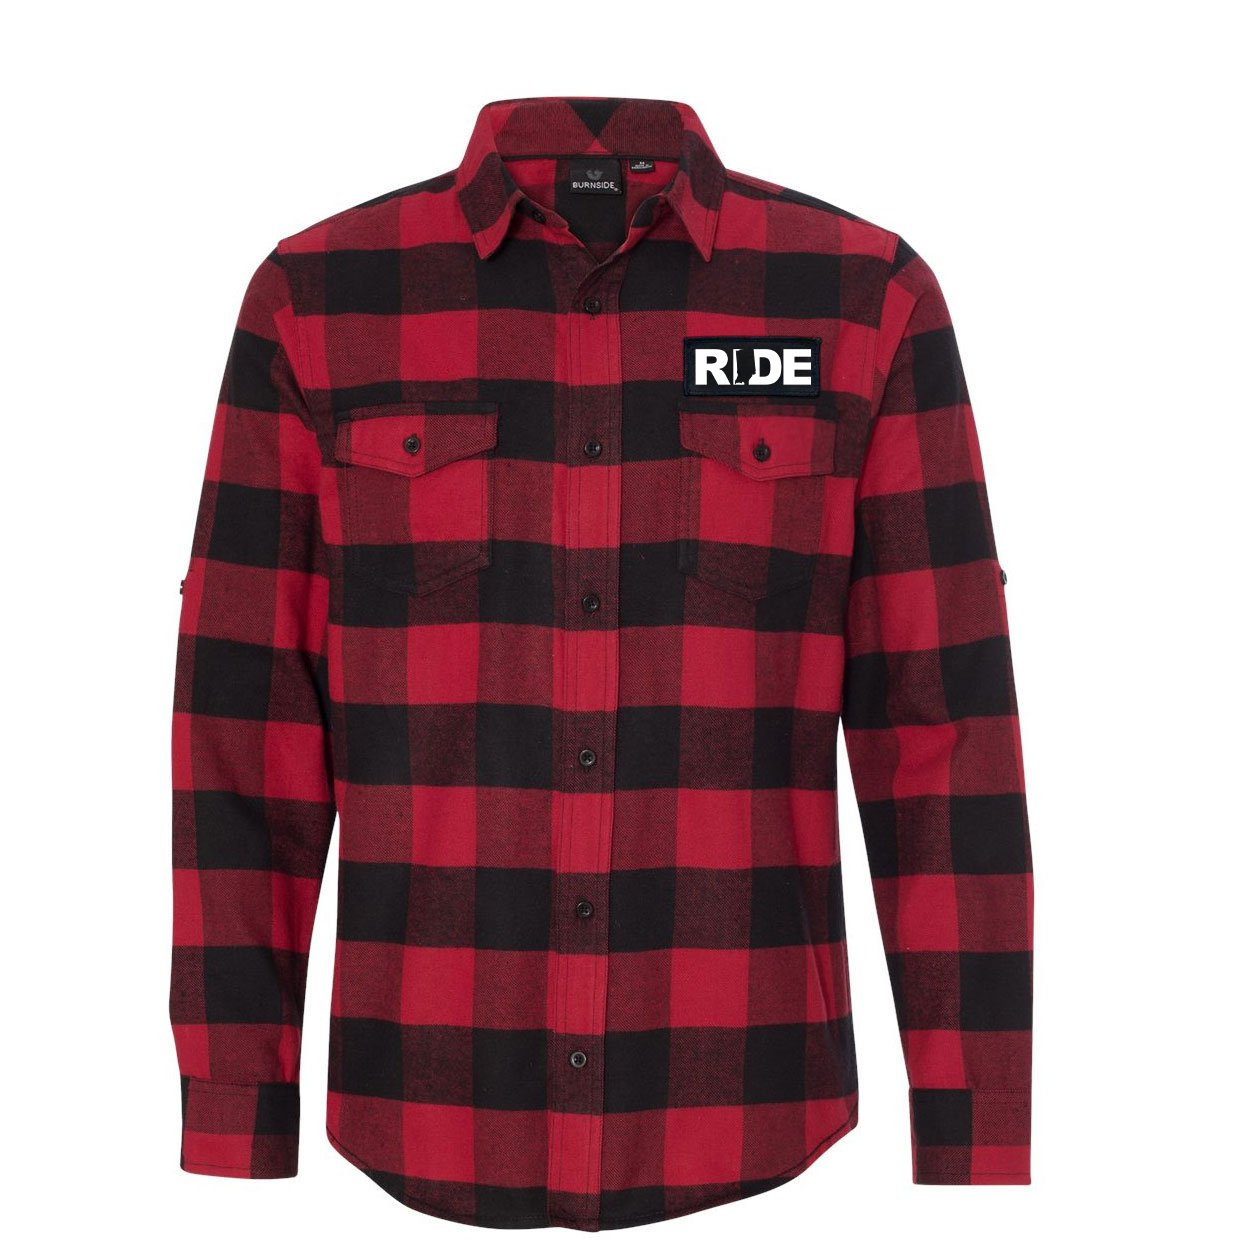 Ride Indiana Classic Unisex Long Sleeve Woven Patch Flannel Shirt Red/Black Buffalo (White Logo)